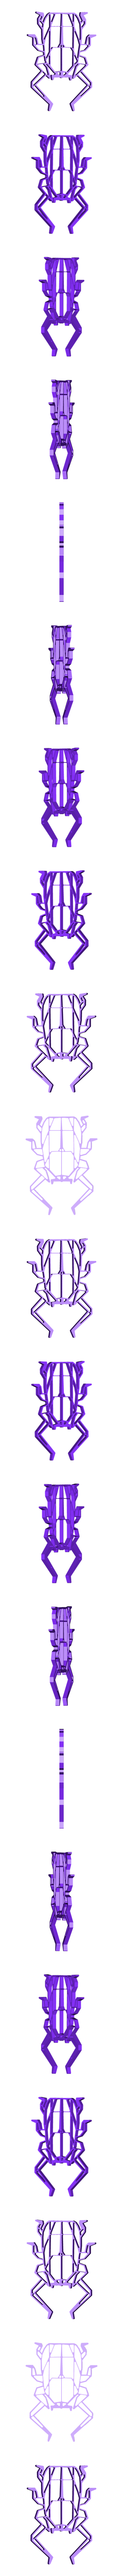 customized_origami_scarab.stl Download free STL file Customizable Origami Scarab • 3D print template, MightyNozzle